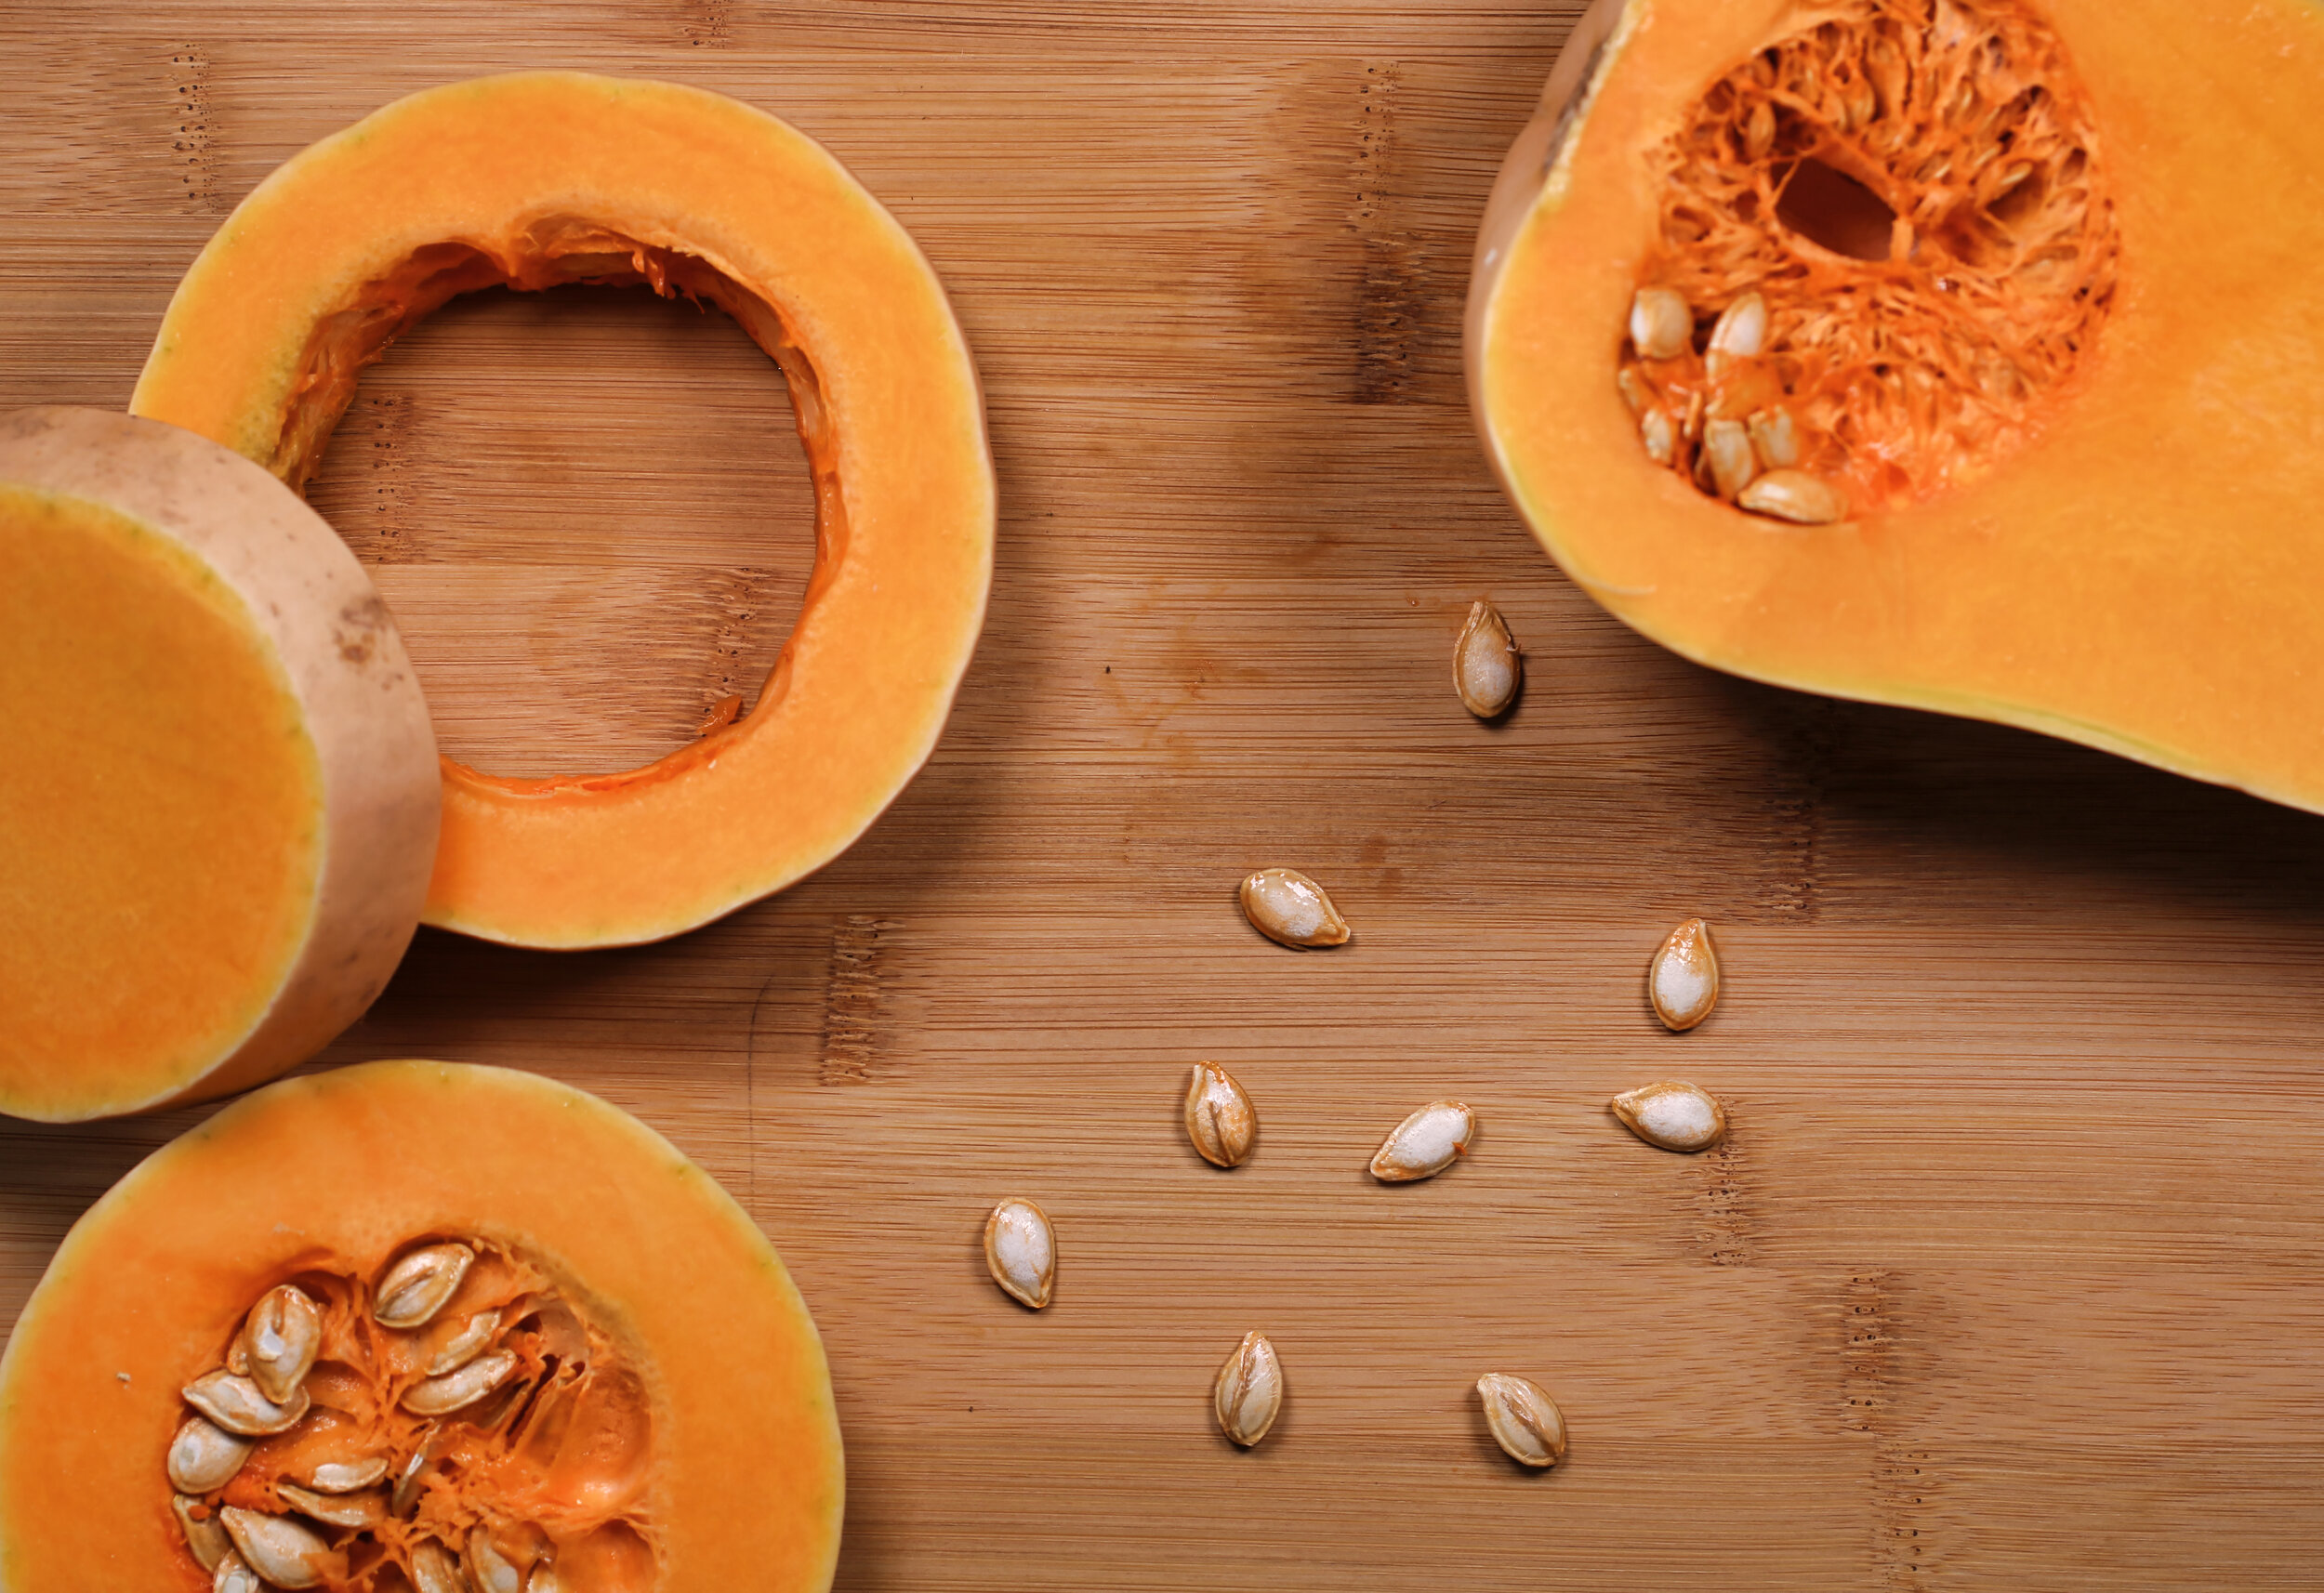 Pumpkin seeds contain powerful antioxidants that protect the body and brain from free radical damage. They're also an excellent source of magnesium, iron, zinc and copper.